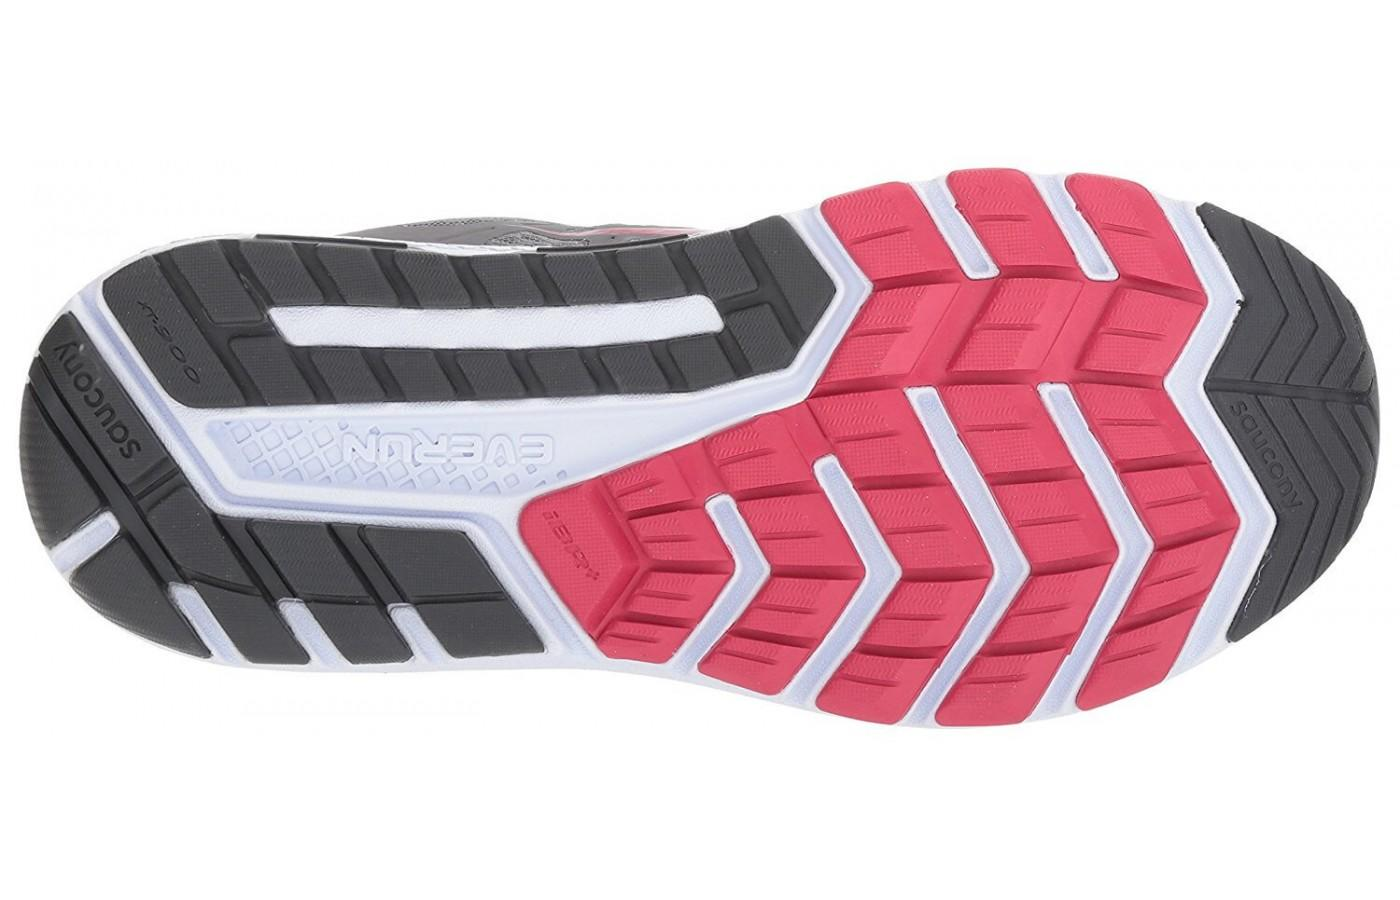 The Saucony Echelon 6's outsole has good ground contact and flexibility